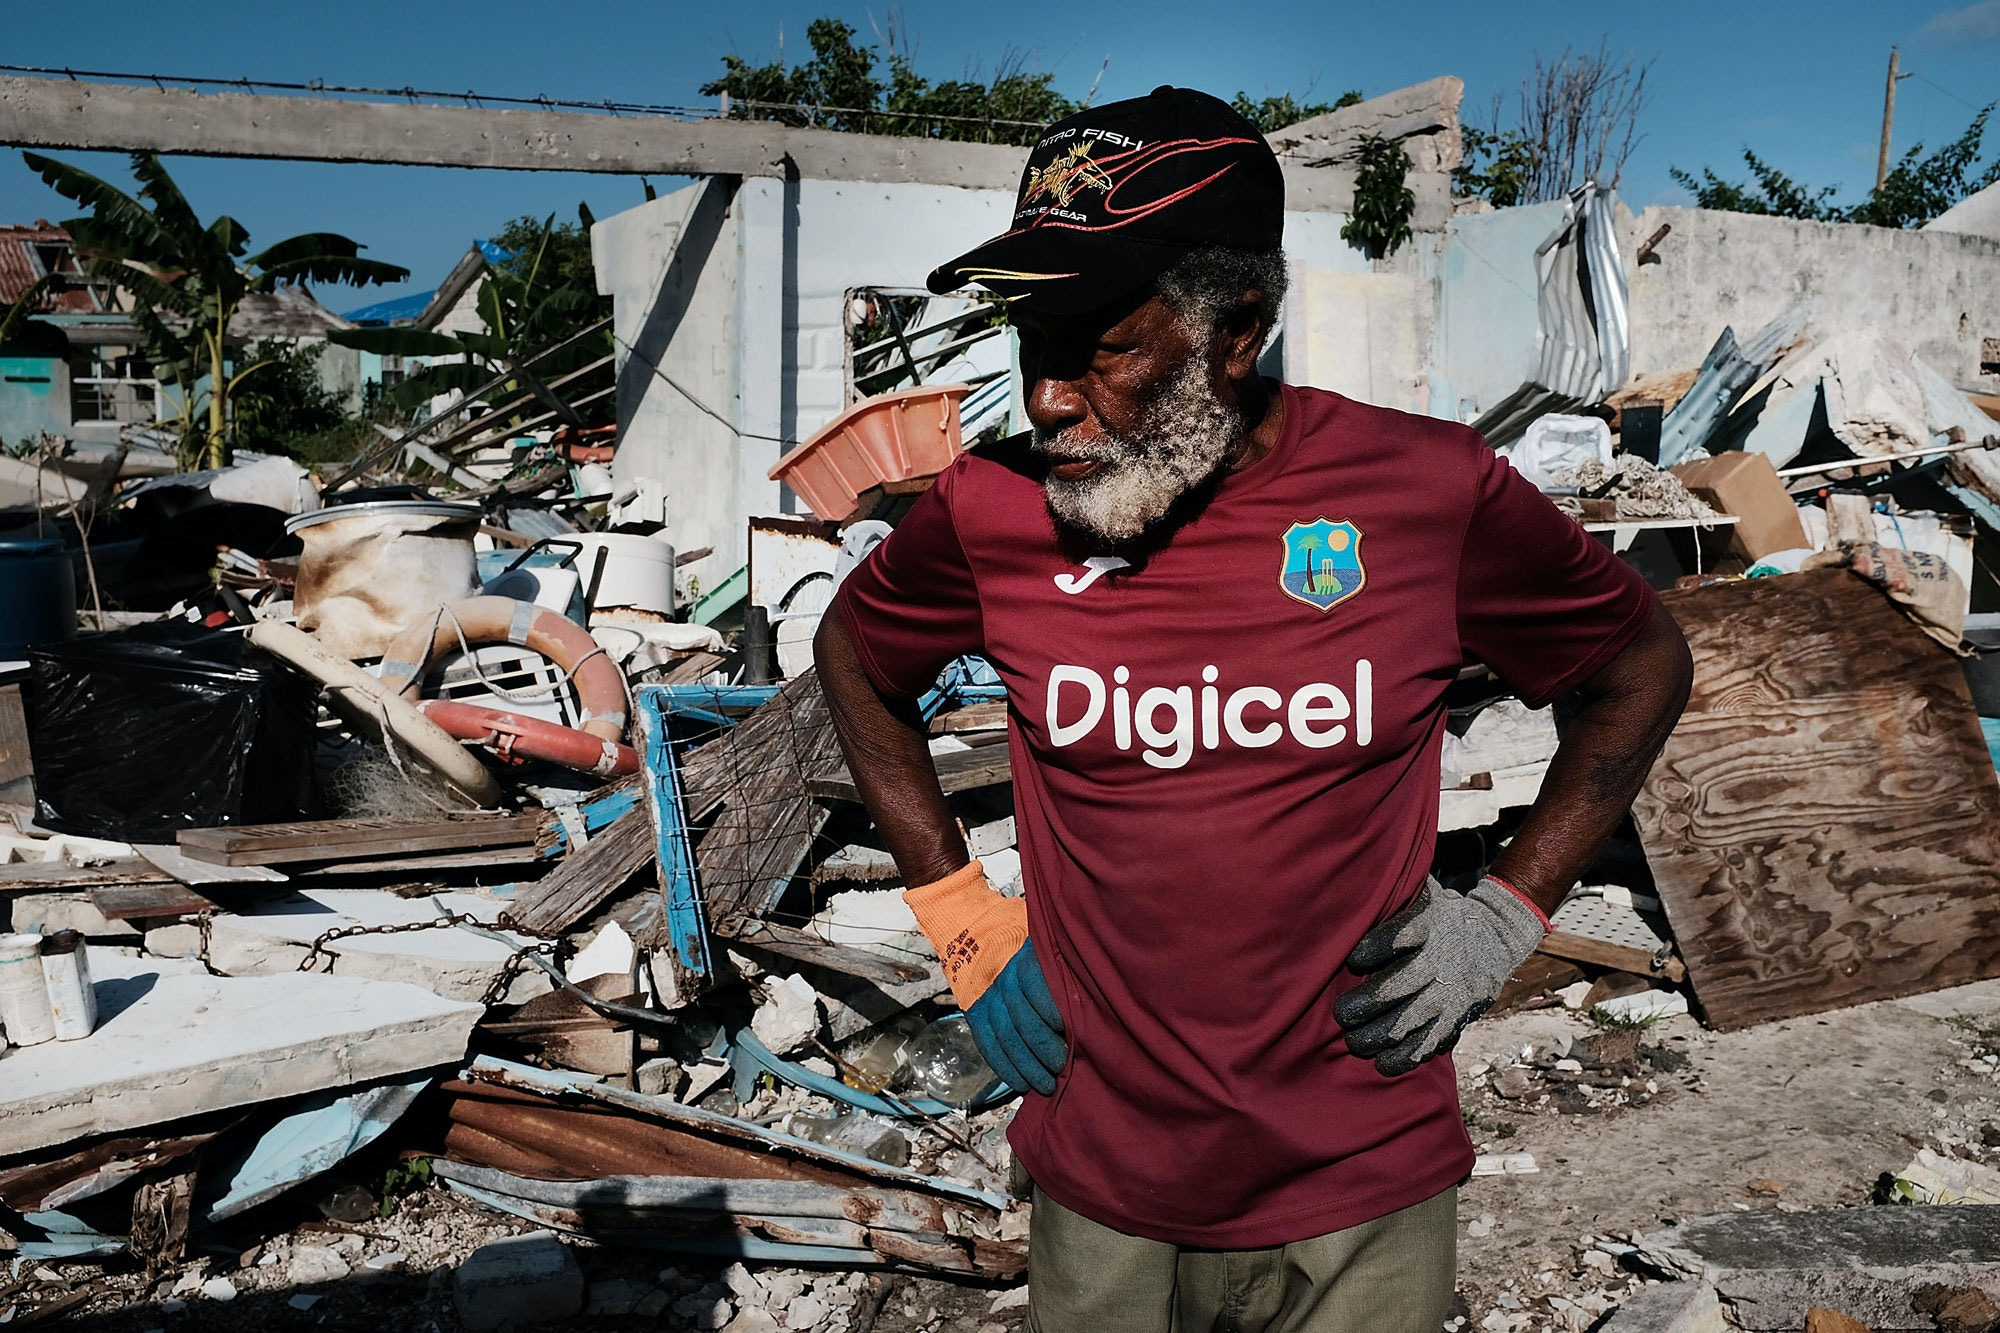 CODRINGTON, BARBUDA - DECEMBER 08: Sherwan Webber stands amongst the debris of his home on the nearly destroyed island of Barbuda on December 8, 2017 in Cordington, Barbuda. Barbuda, which covers only 62 square miles, was nearly leveled when Hurricane Irma made landfall with 185mph winds on the night of  September six. Only two days later, fearing Barbuda would be hit again by Hurricane Jose, the prime minister ordered an evacuation of all 1,800 residents of the island. Most are now still in shelters scattered  around Barbuda's much larger sister island Antigua.  (Photo by Spencer Platt/Getty Images)